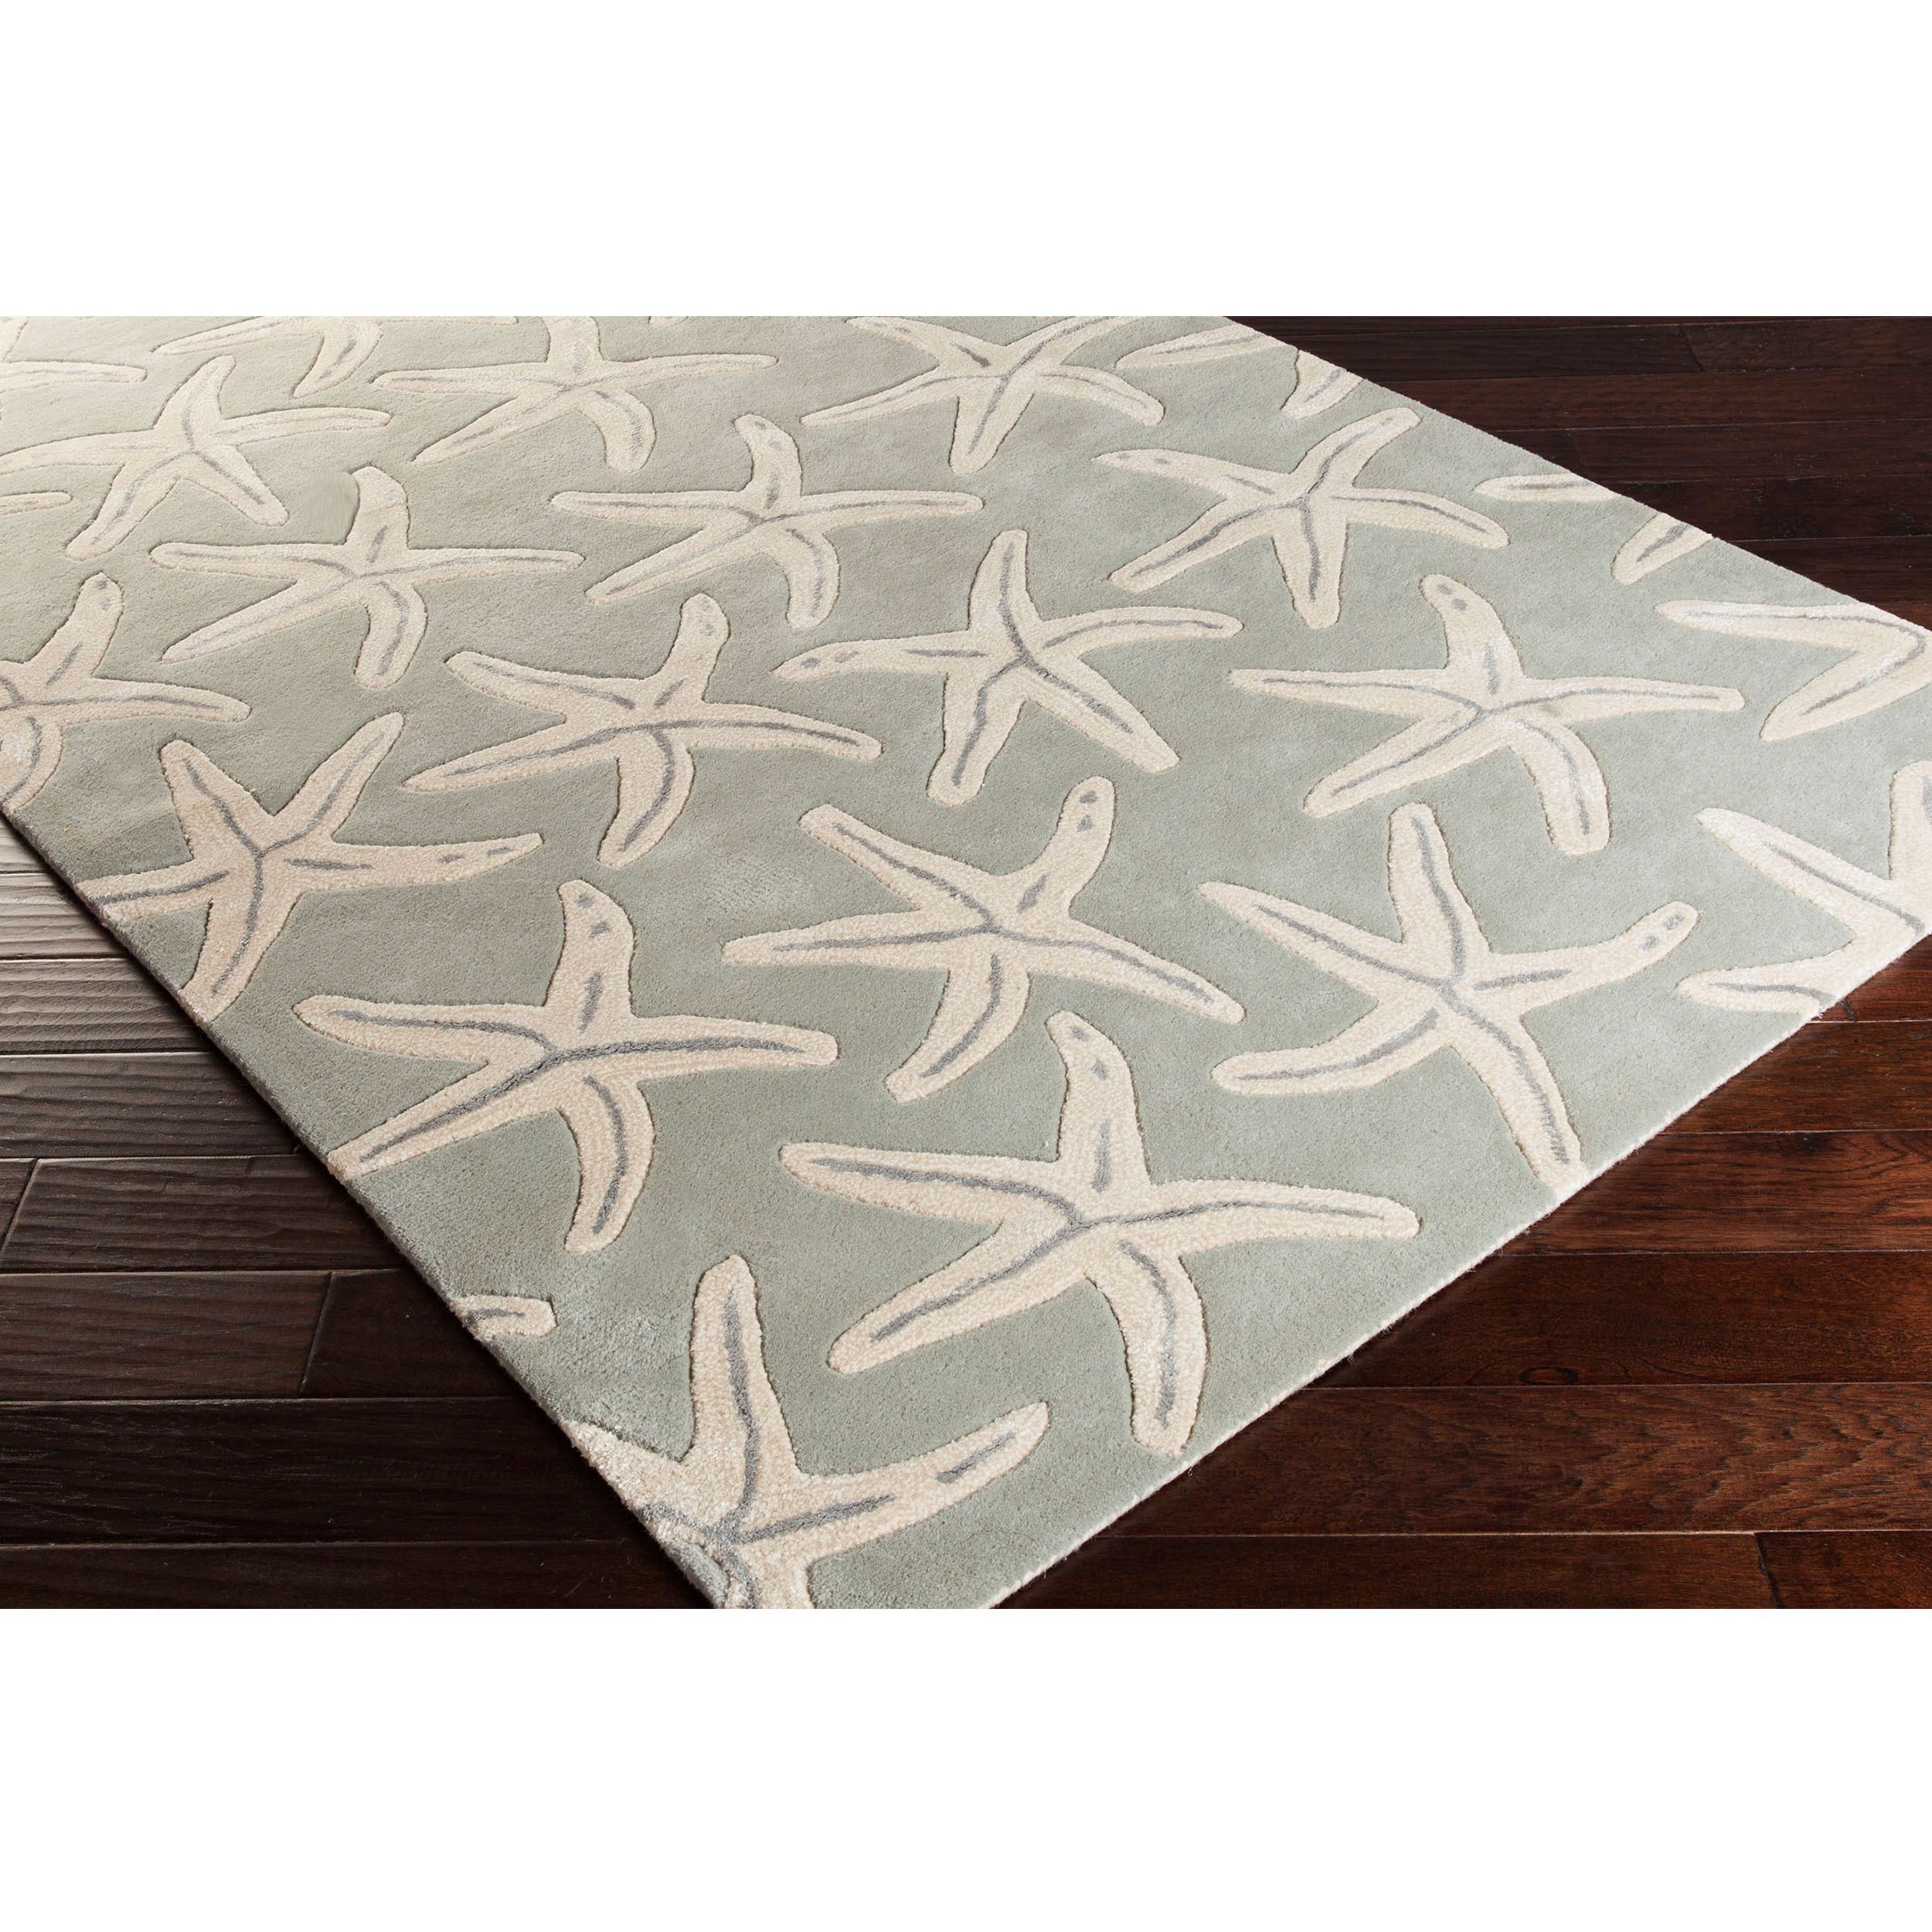 Add interest to your decor with this coastal inspired rug